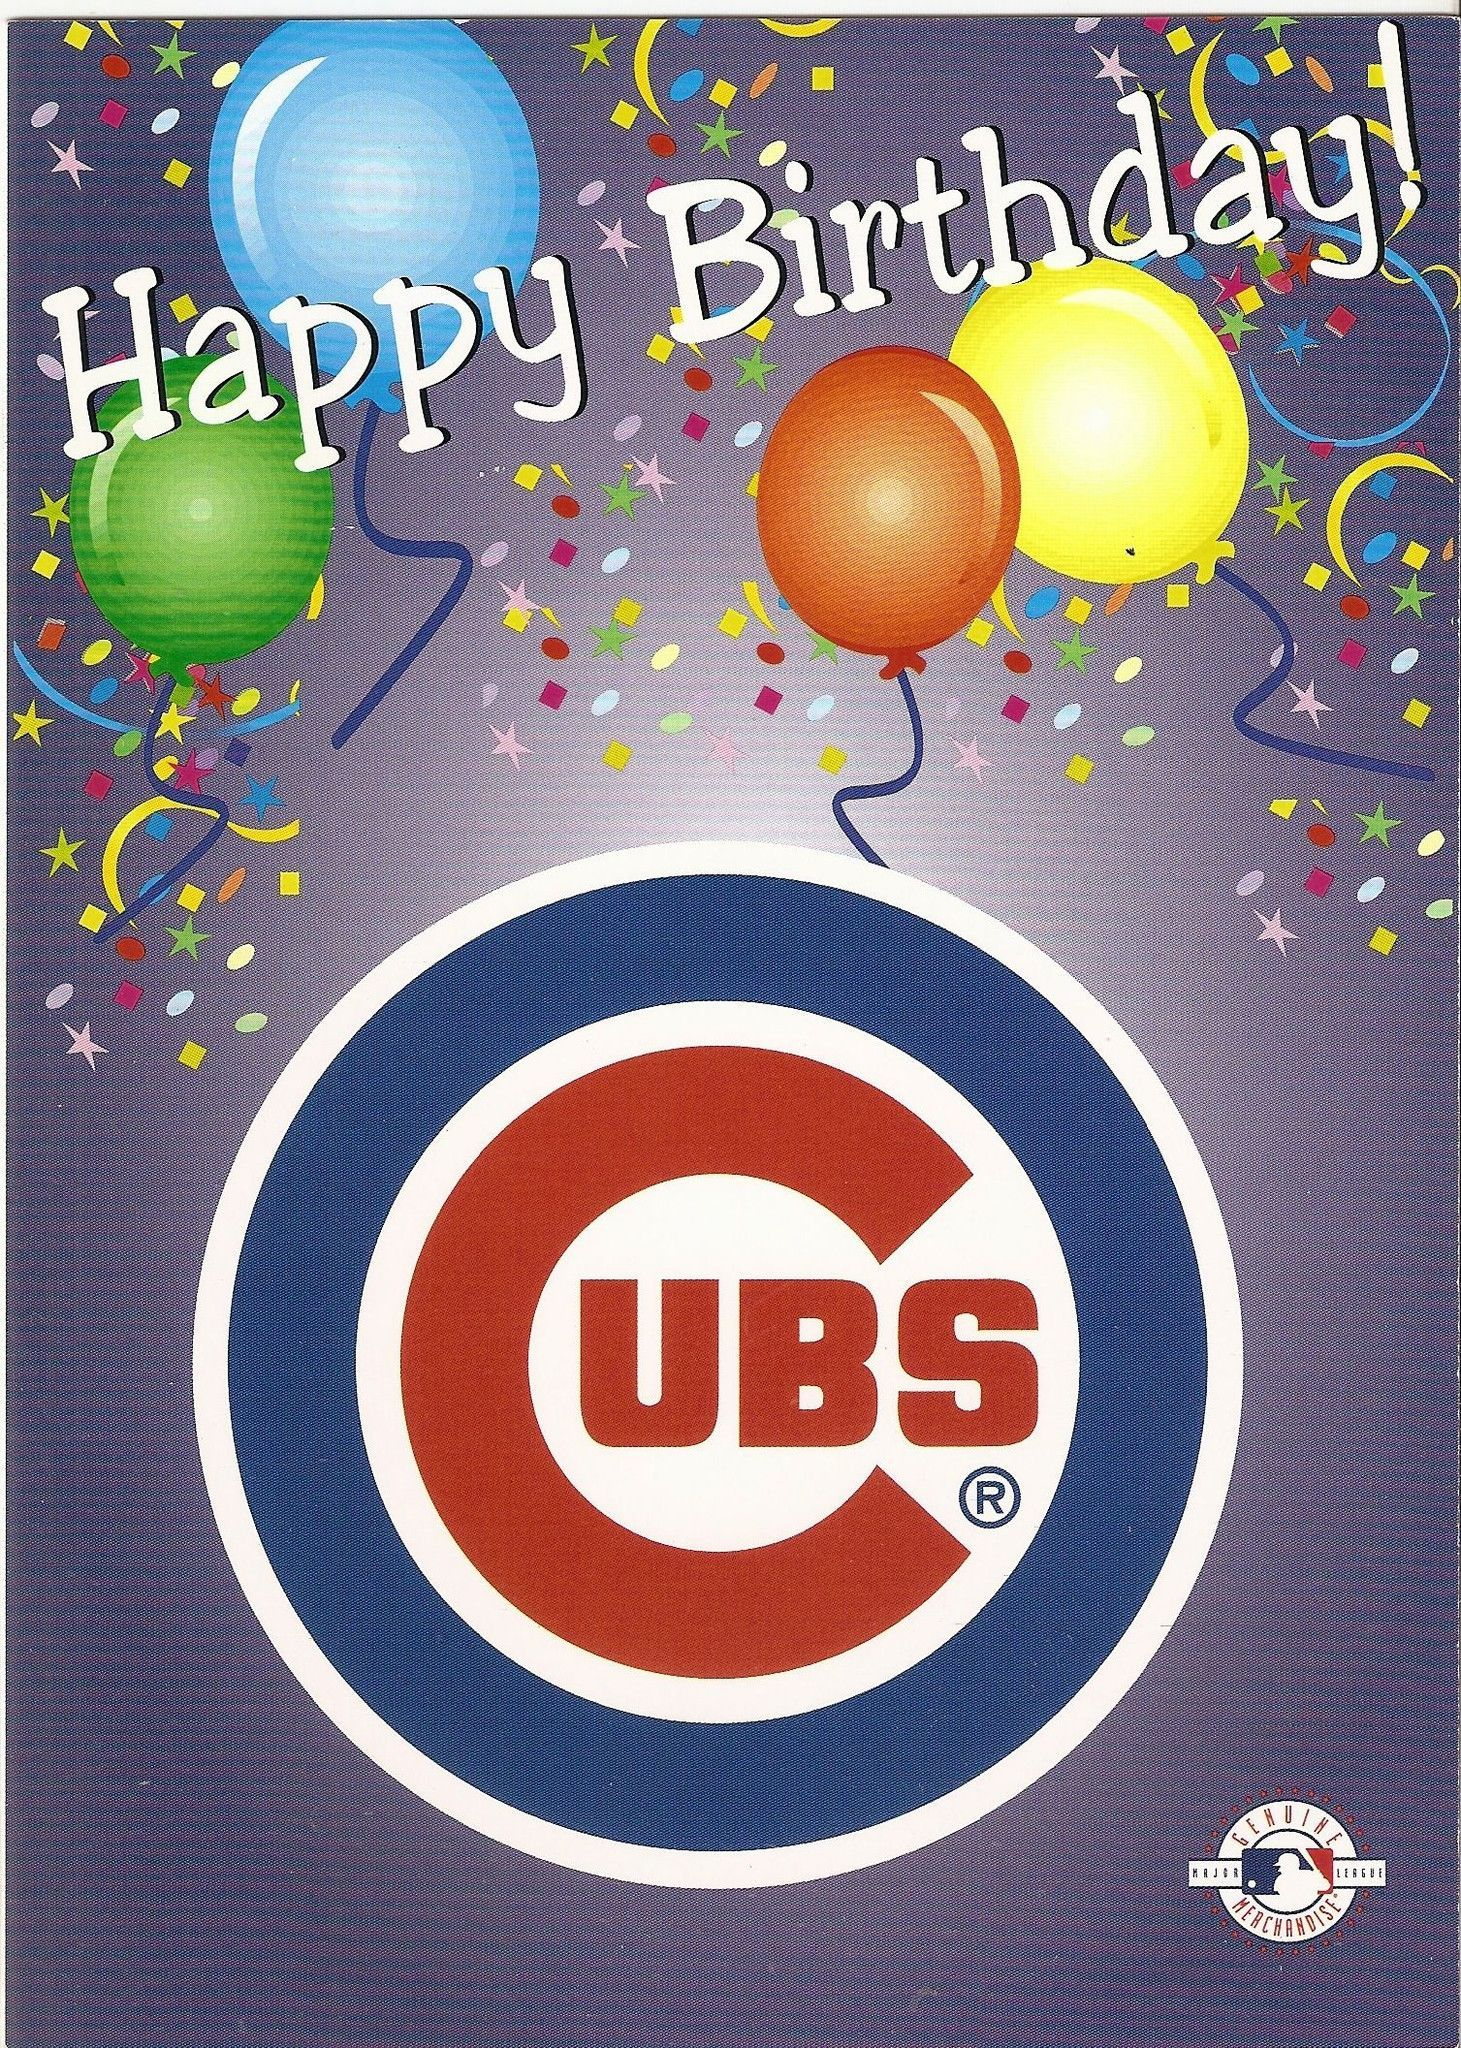 cubs happy birthday meme ; 8a3dd18fdf0550849675886fb91789ab